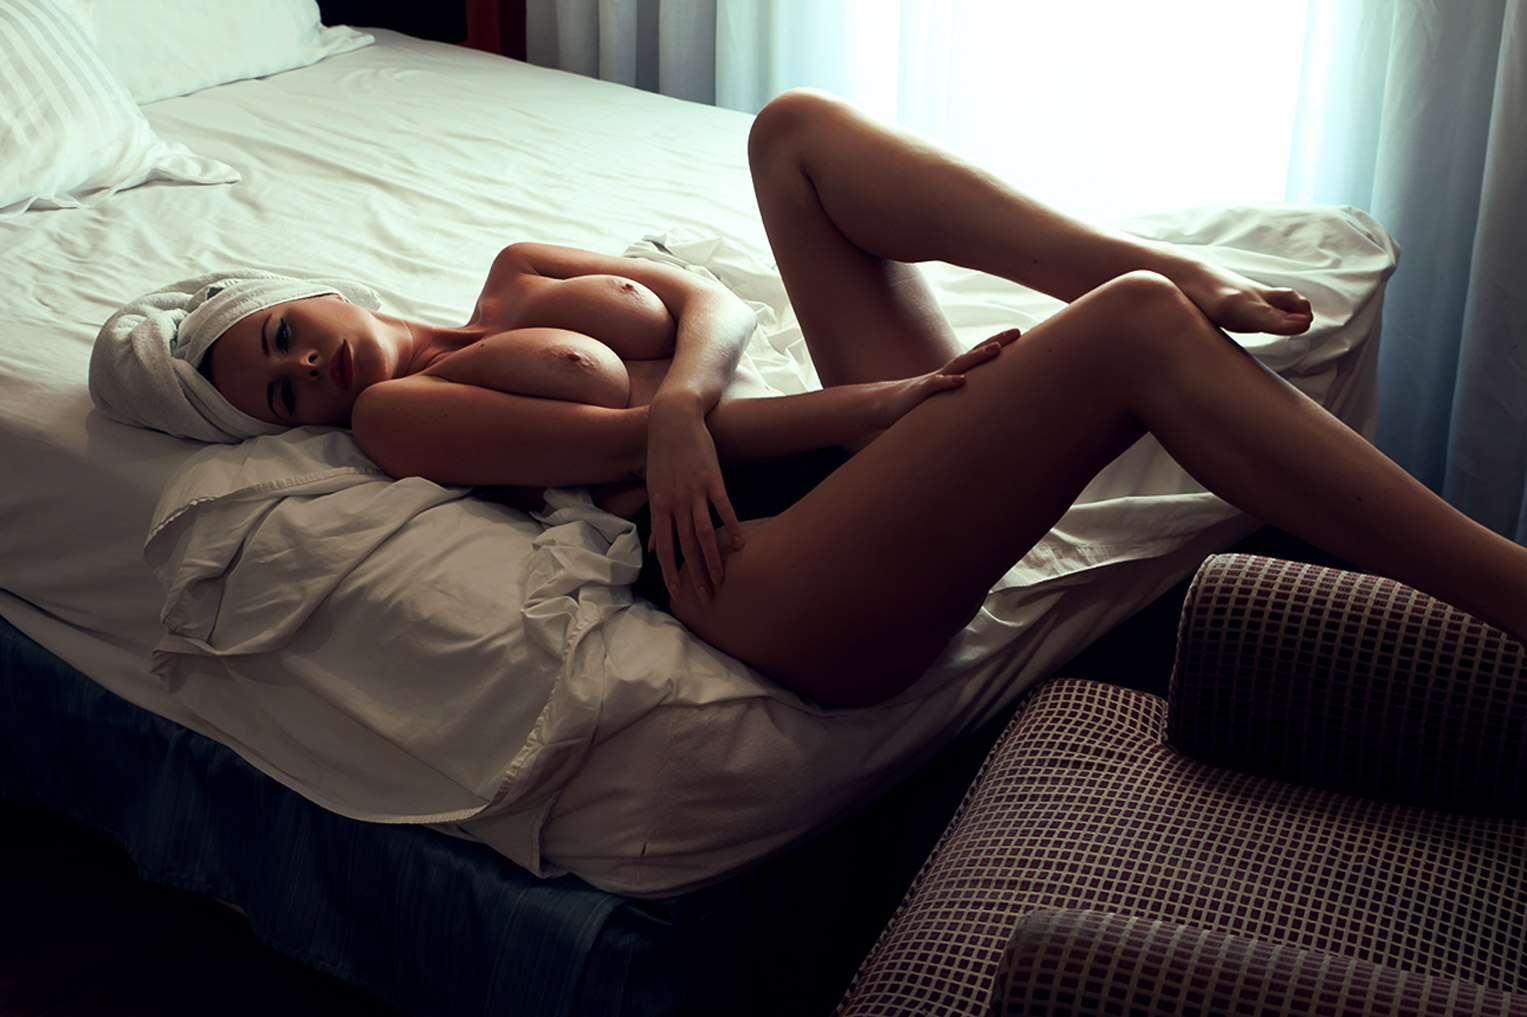 Нина Свон / Nina Swan nude by William Beauplant - Dixie Hollywood Hotel / Coy Culture